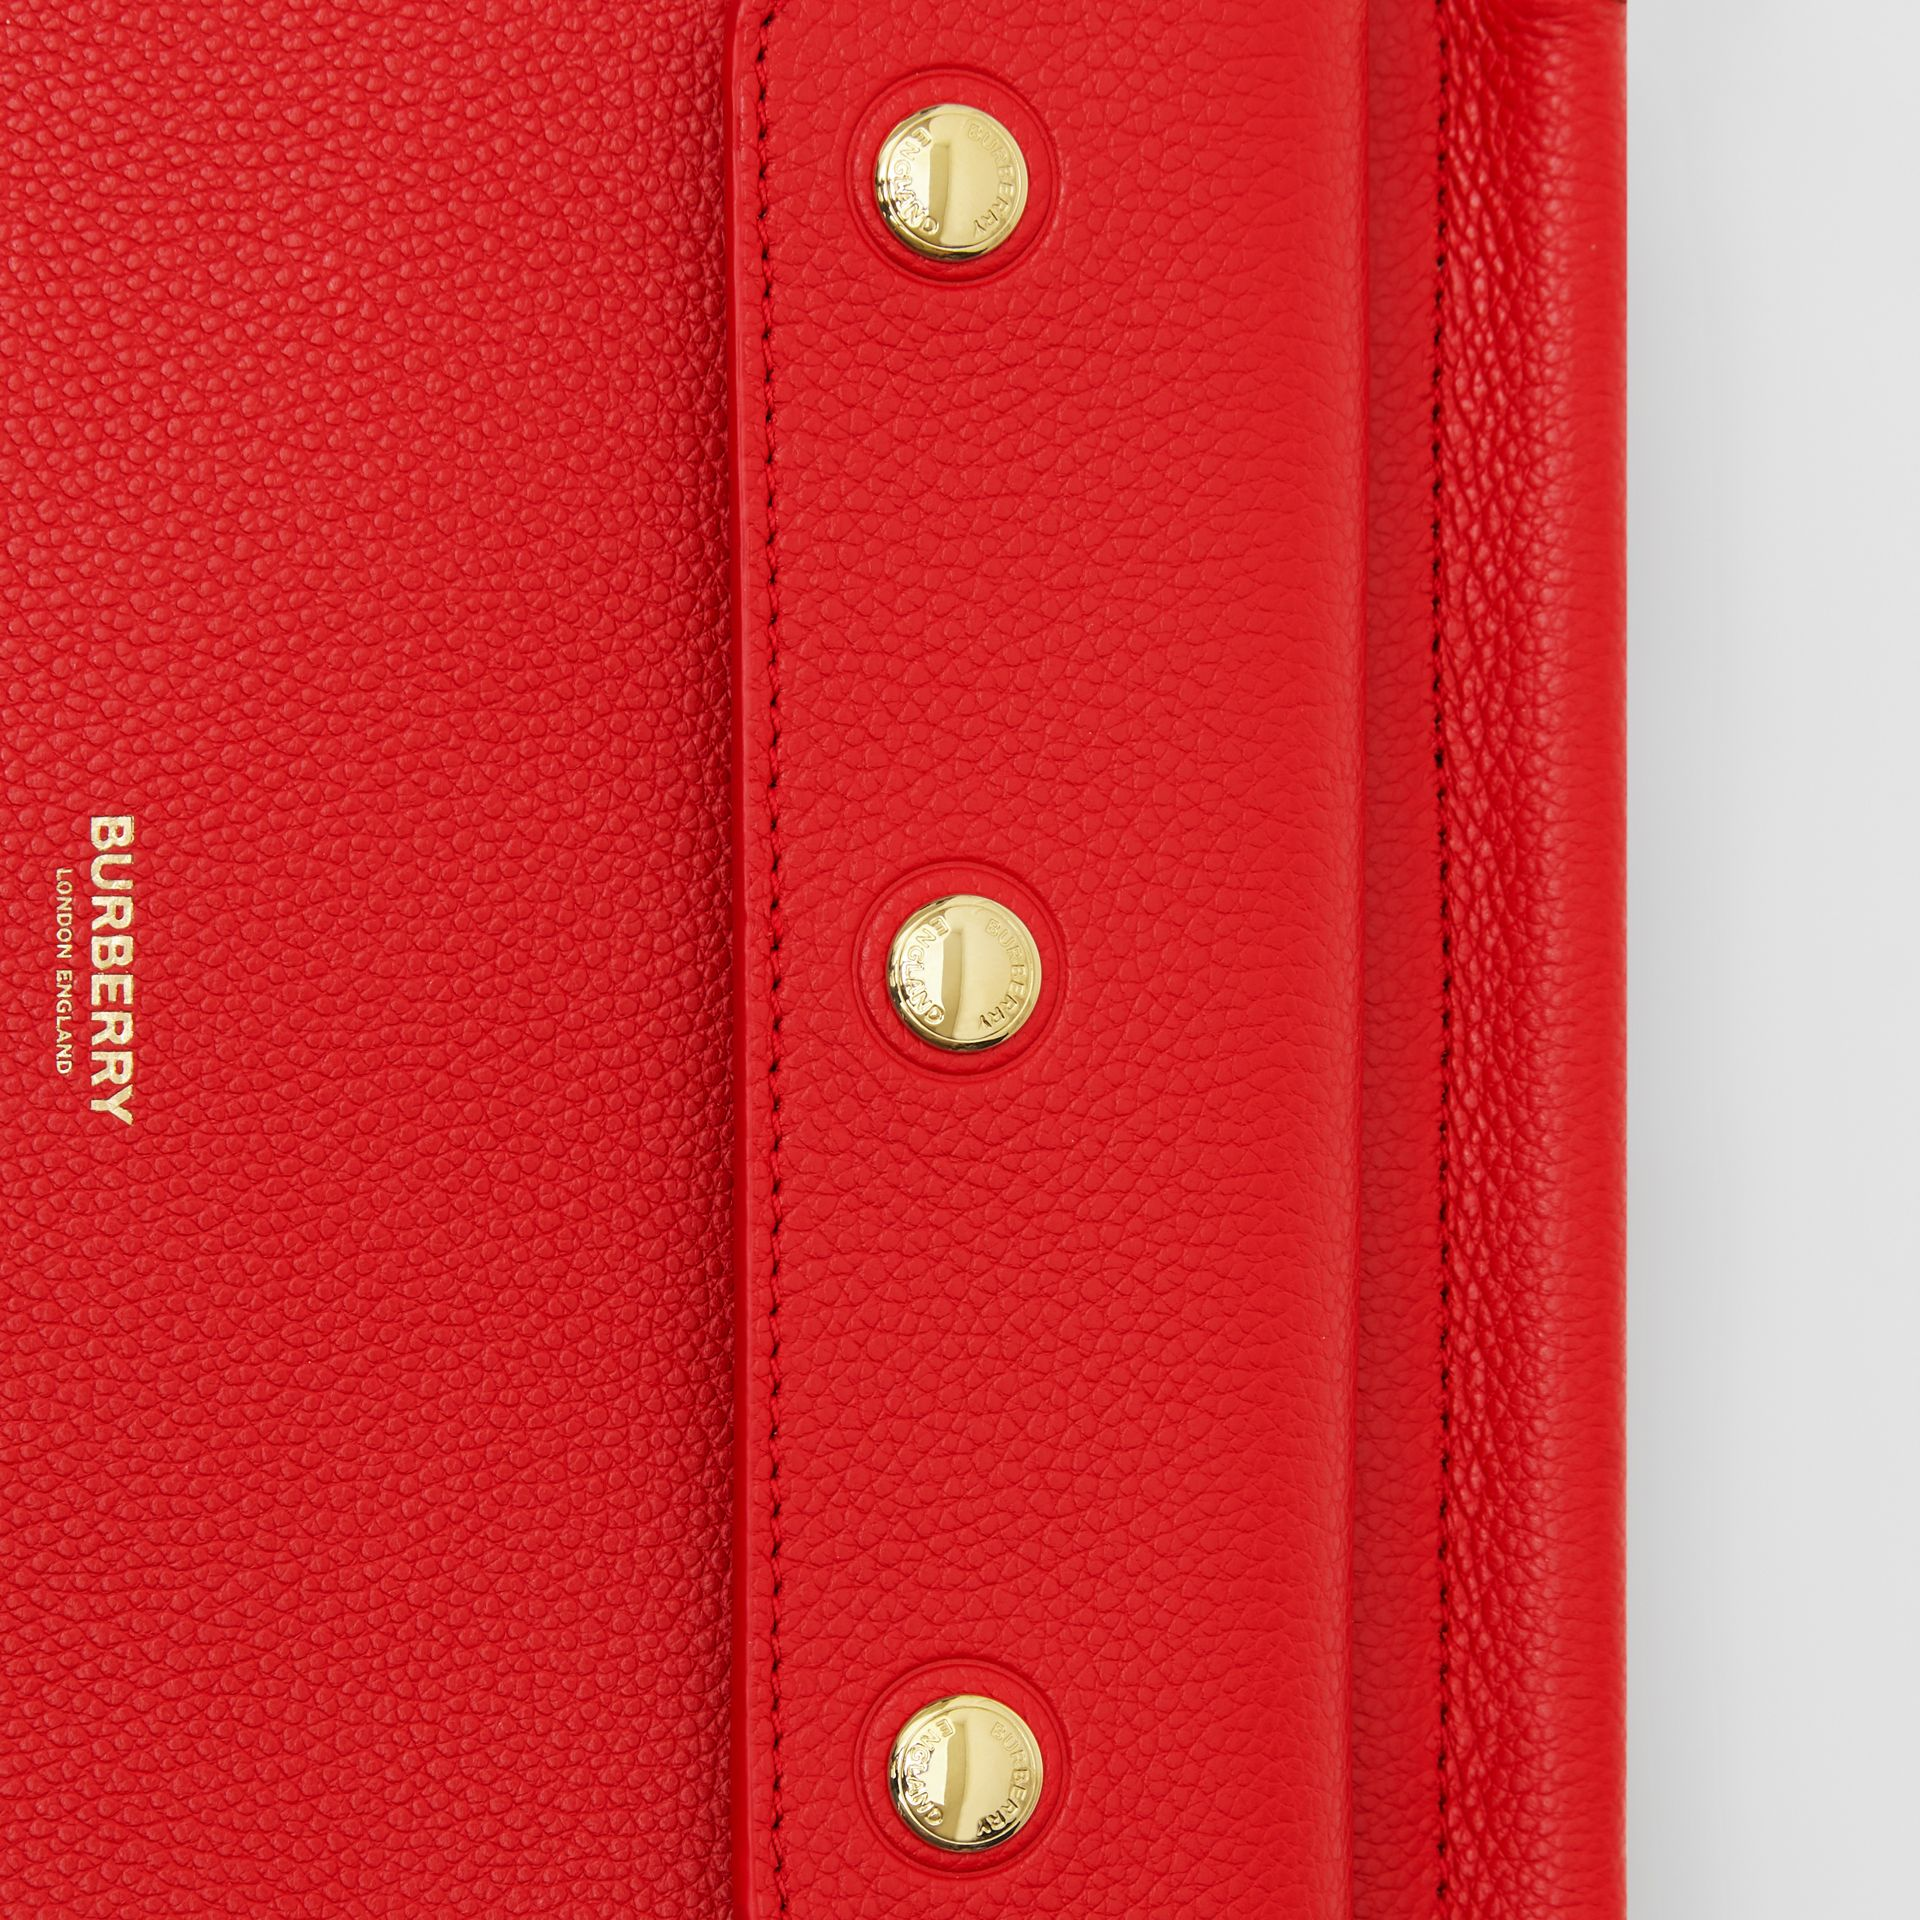 Mini Leather Title Bag with Pocket Detail in Bright Military Red - Women | Burberry Singapore - gallery image 1